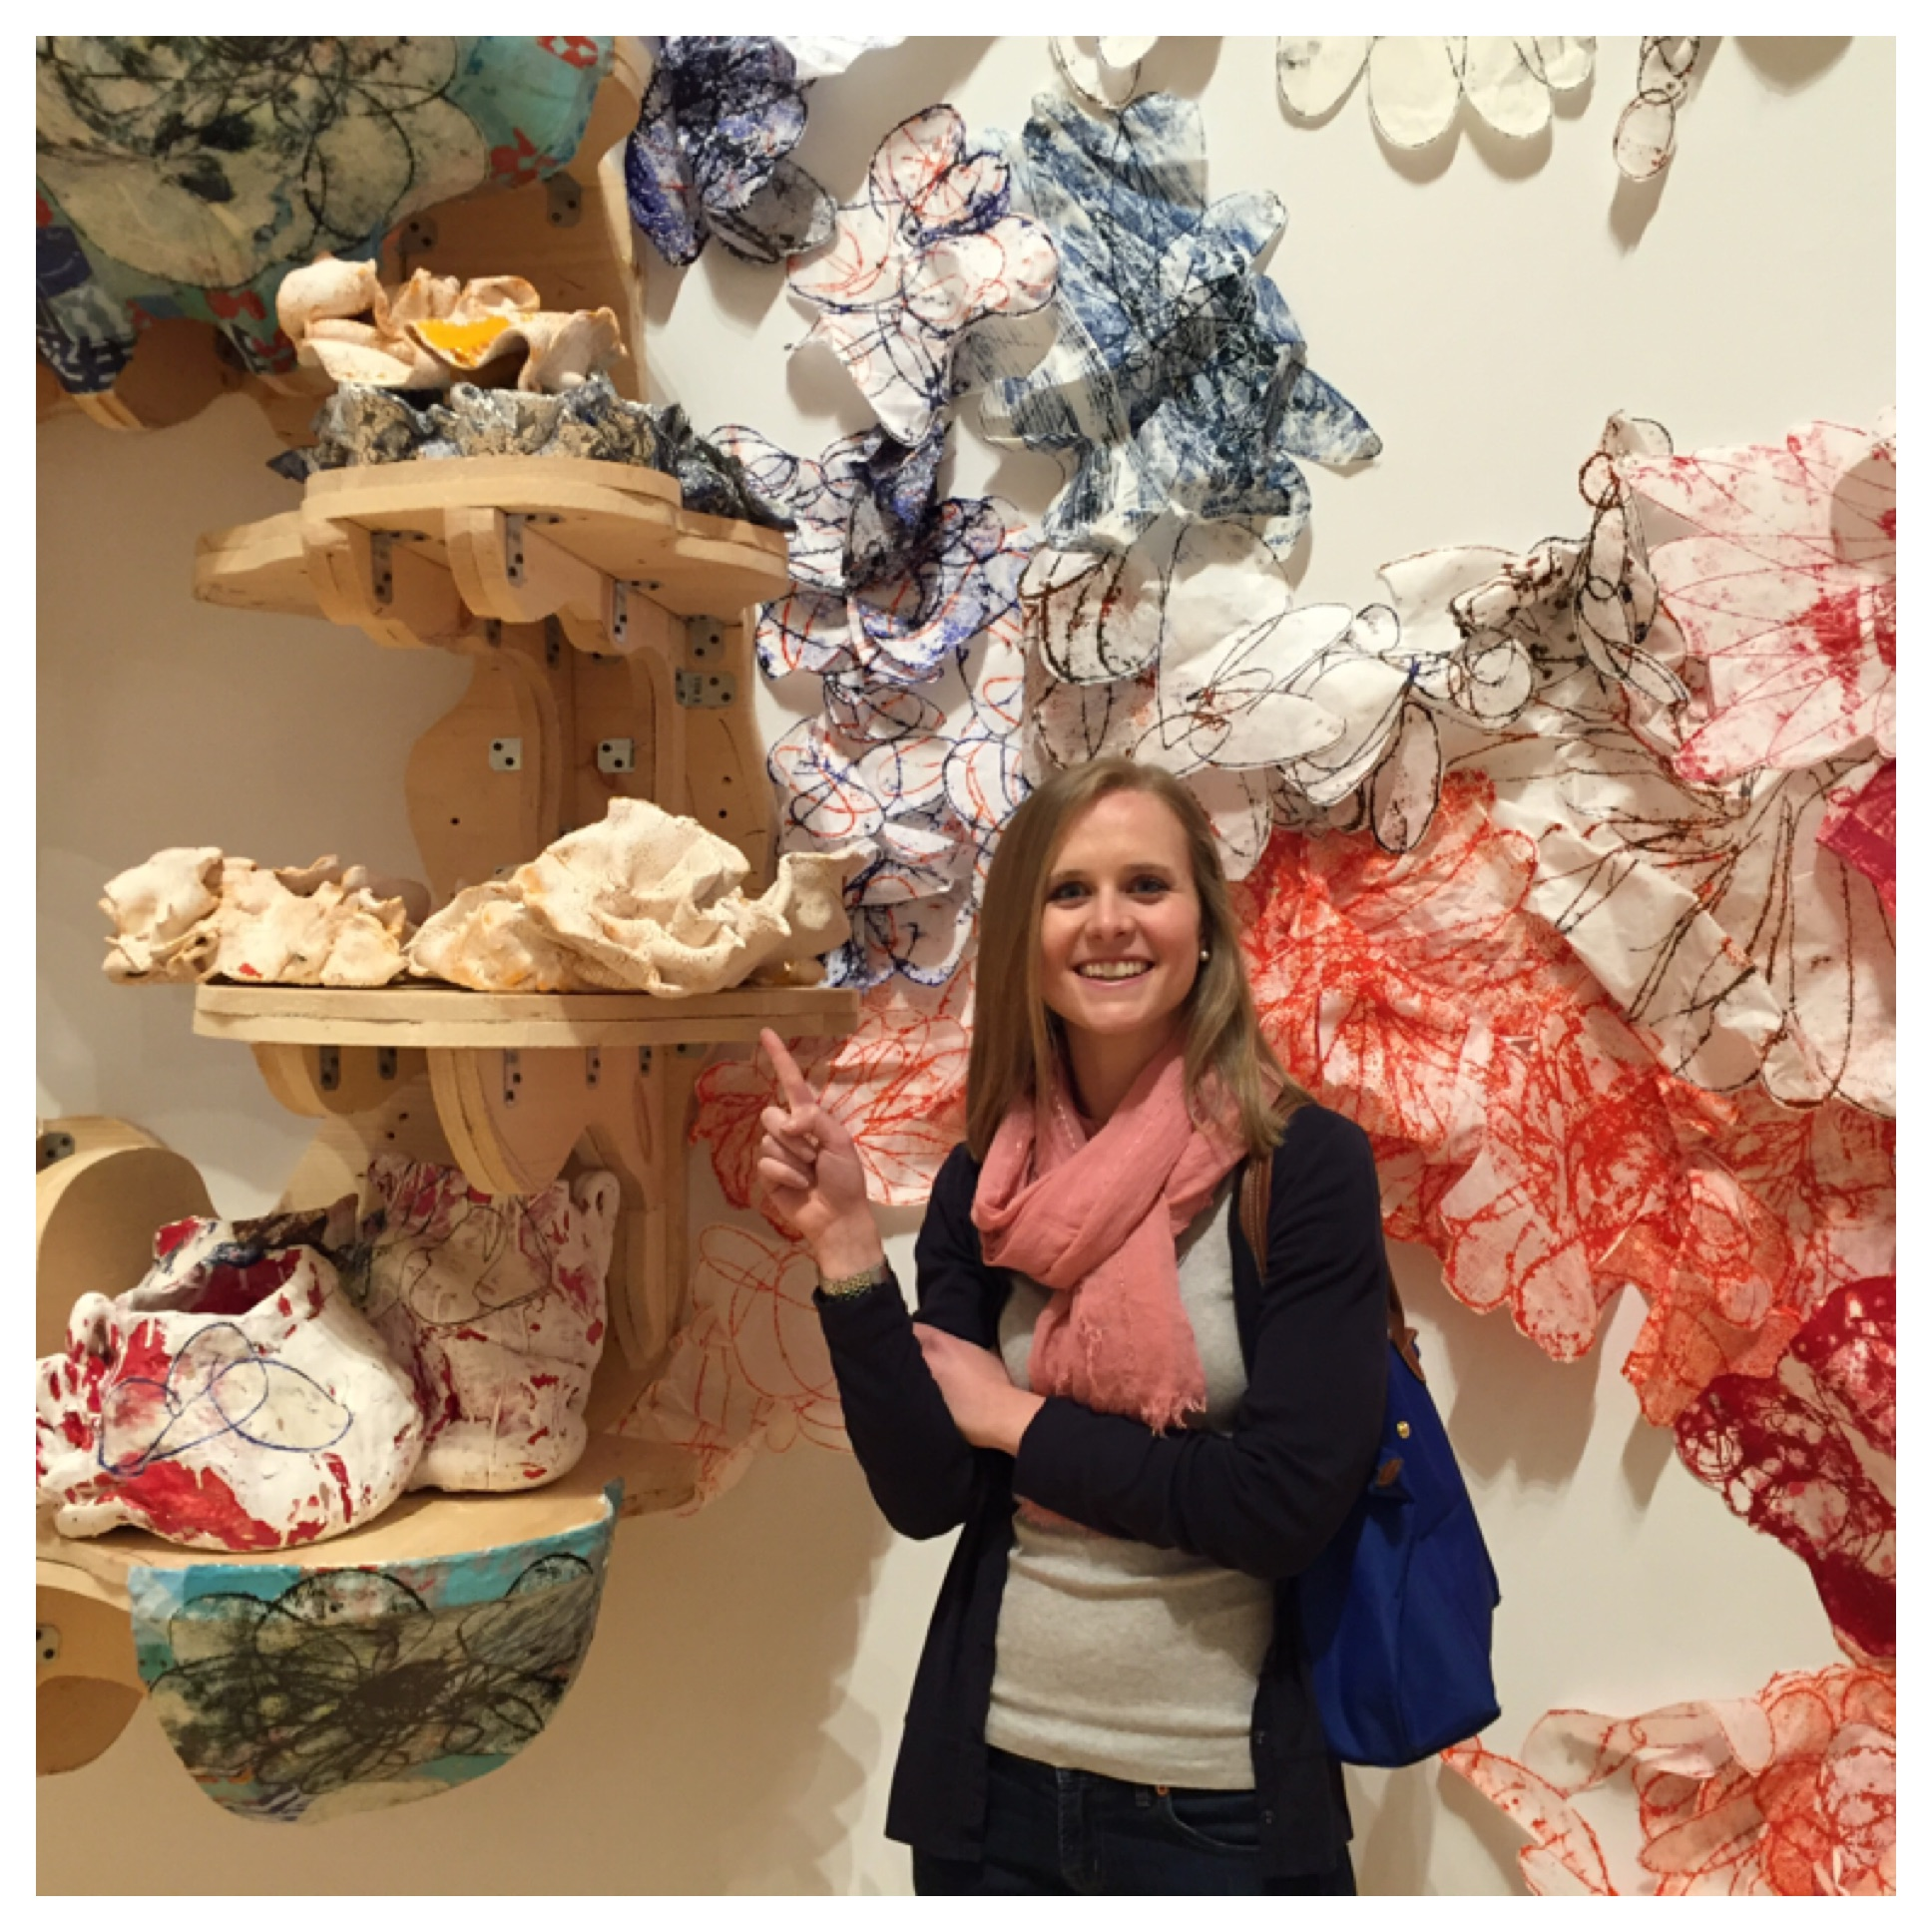 Keeley pointing to a ceramic piece that reminded us of the pinch pots every child makes in elementary school.